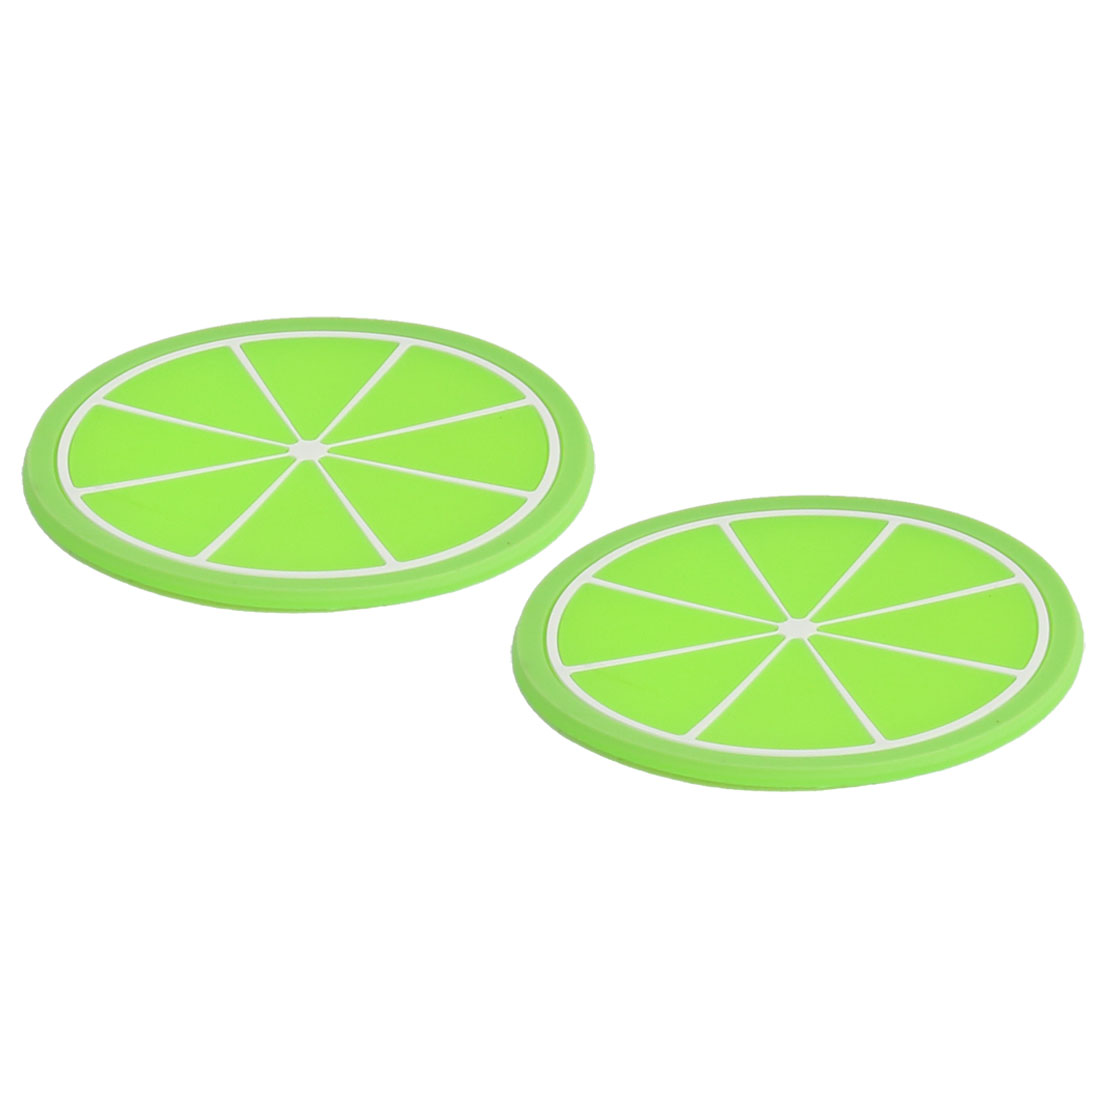 Household Tableware Silicone lime Pattern Heat Insulation Water Resistant Pad Mat Green 2pcs